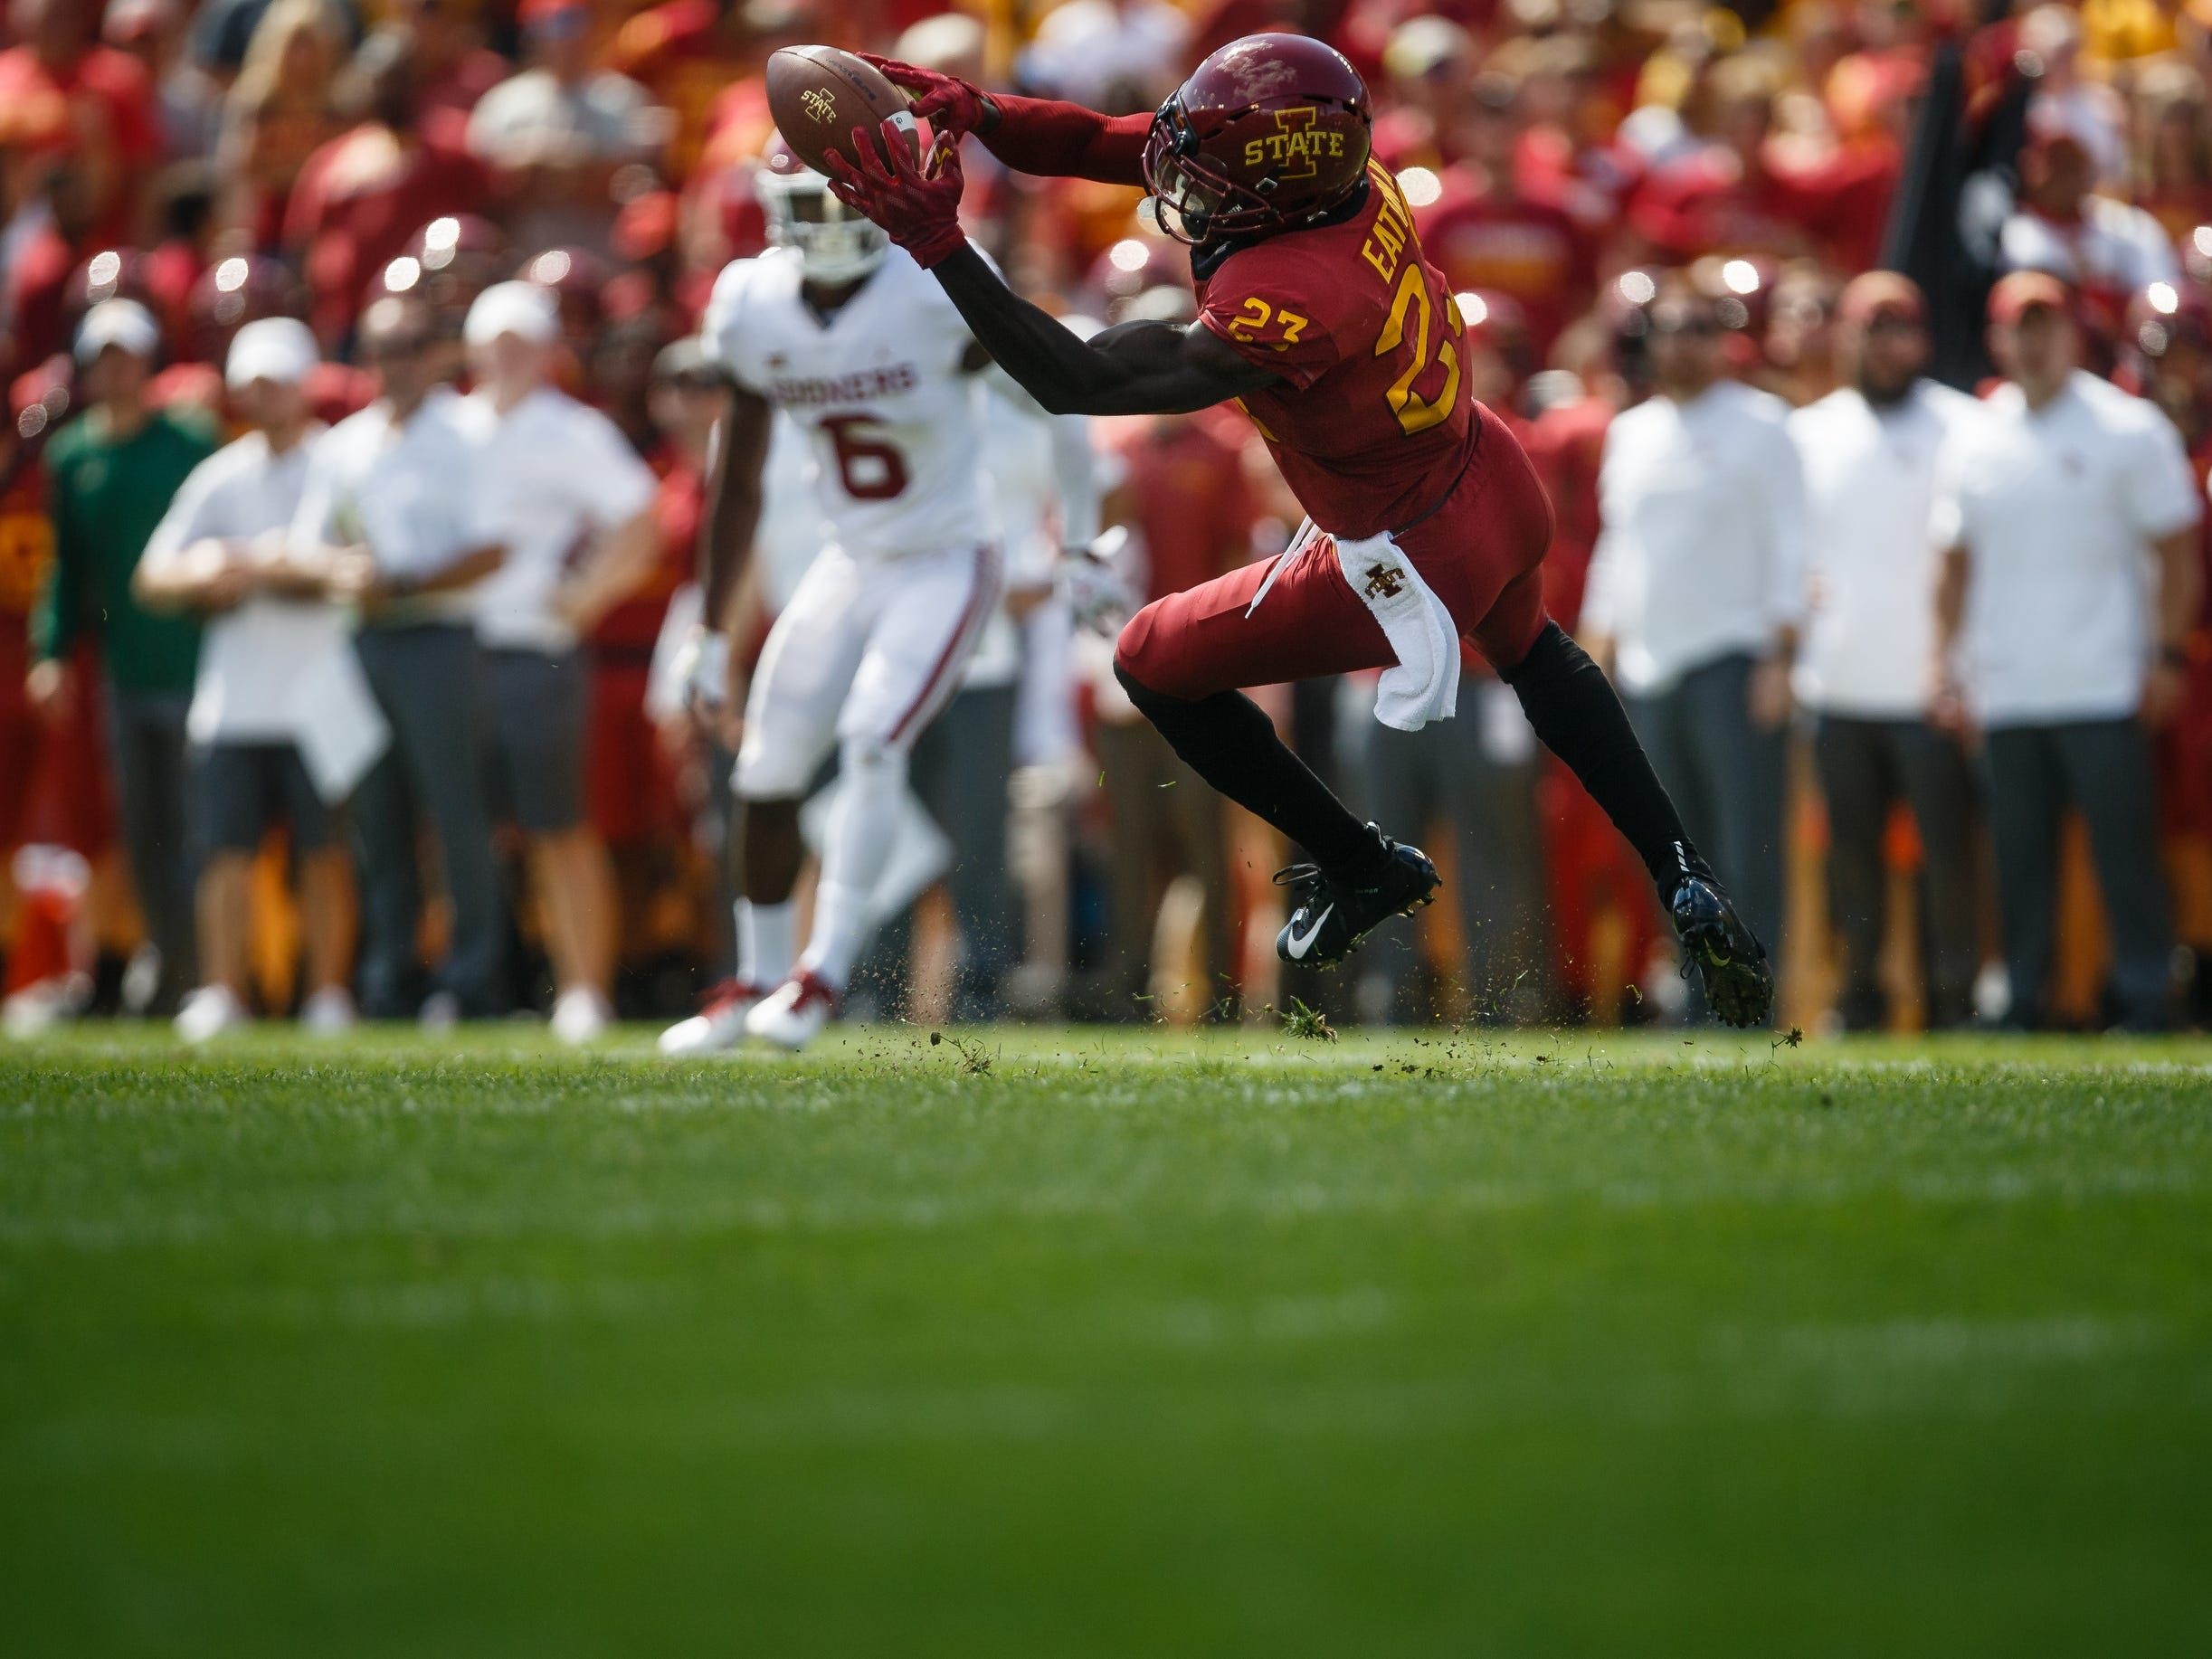 Iowa State's Matthew Eaton (23) makes a catch during their football game against Oklahoma at Jack Trice Stadium on Saturday, Sept. 15, 2018 in Ames. Oklahoma would go on to win 37-27.